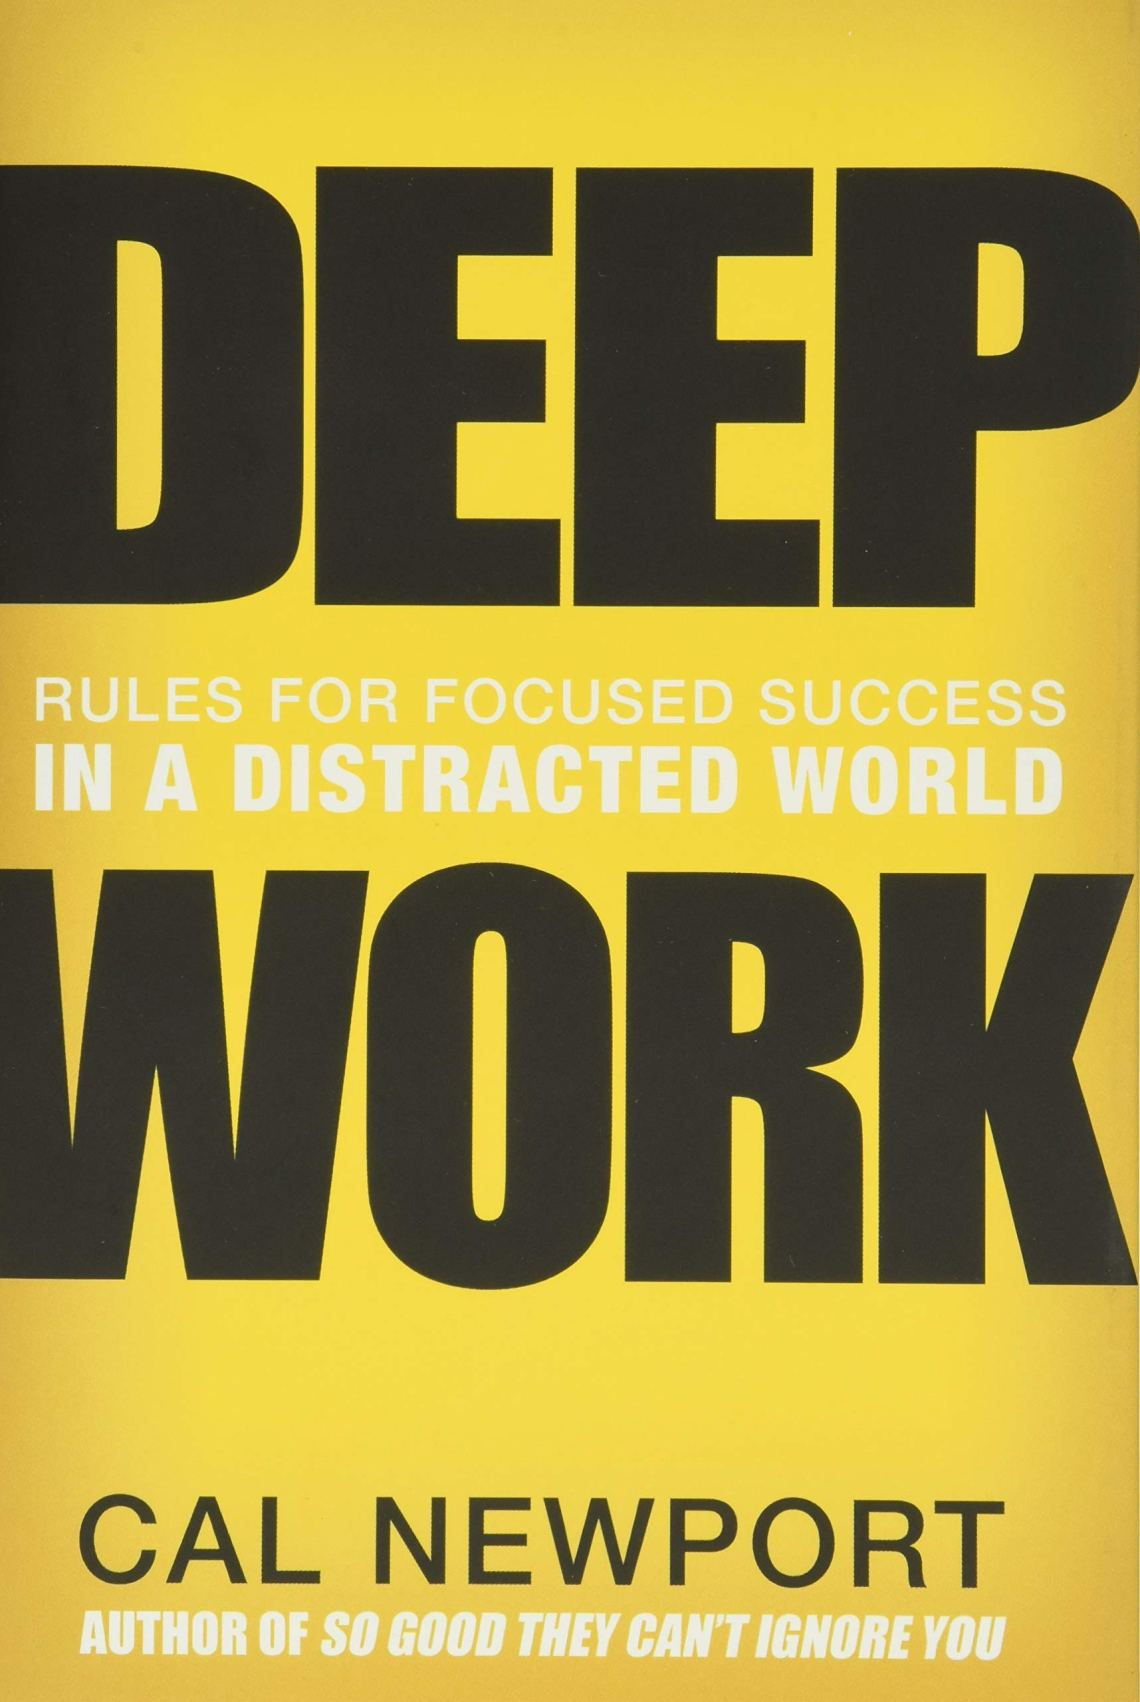 Deep work one of best business books